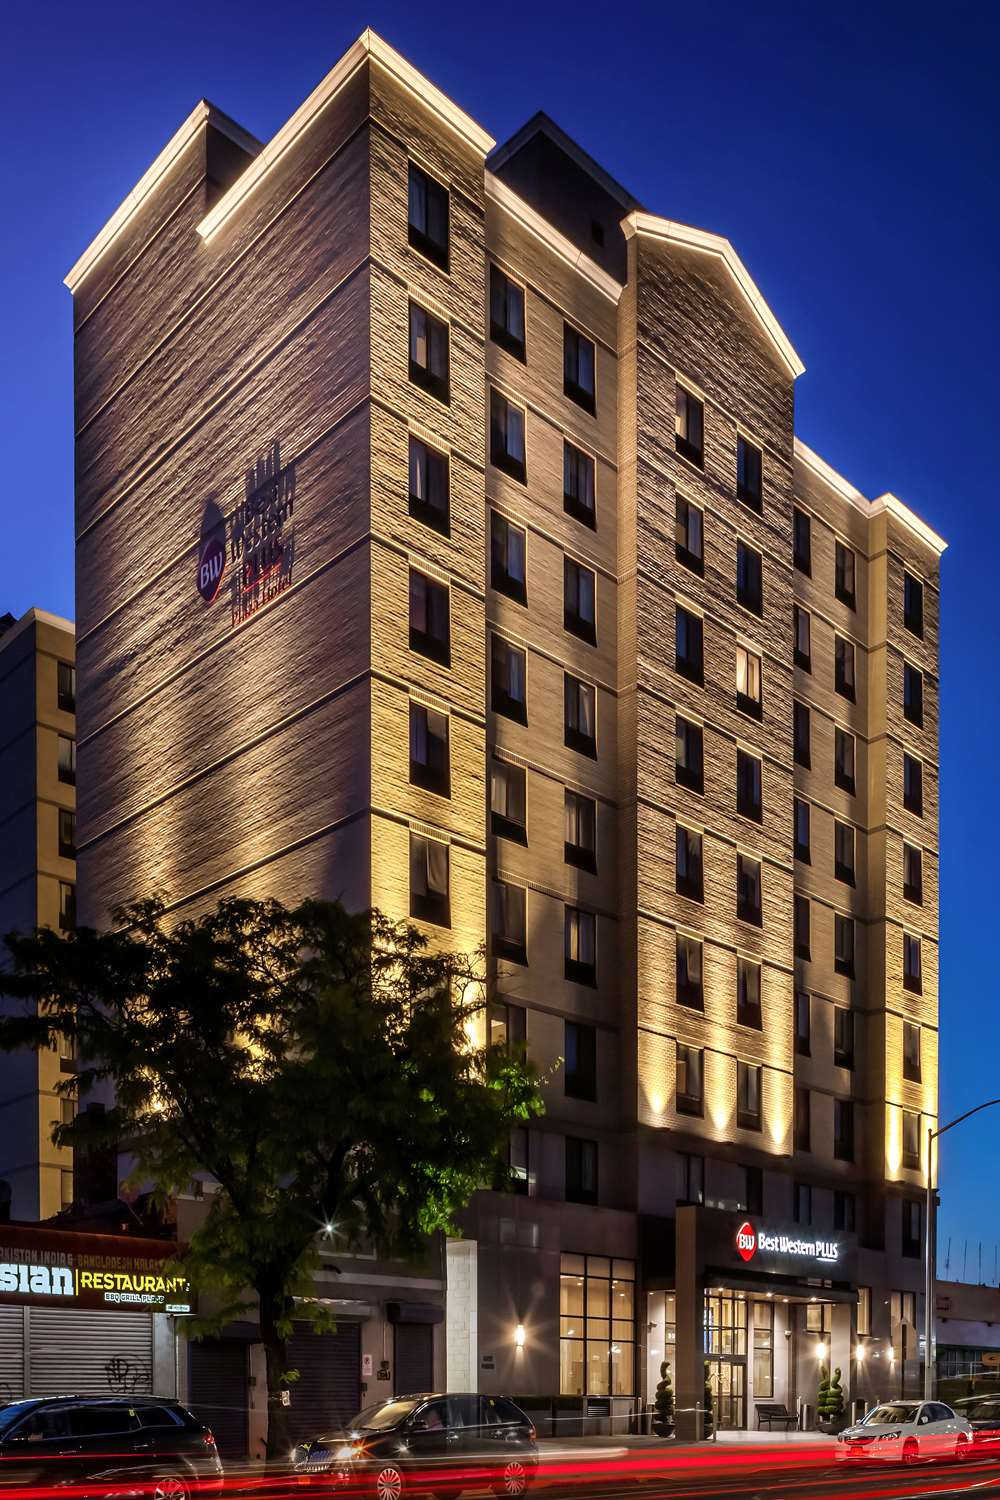 Best Western Plus Plaza Hotel Long Island City Queens, NY